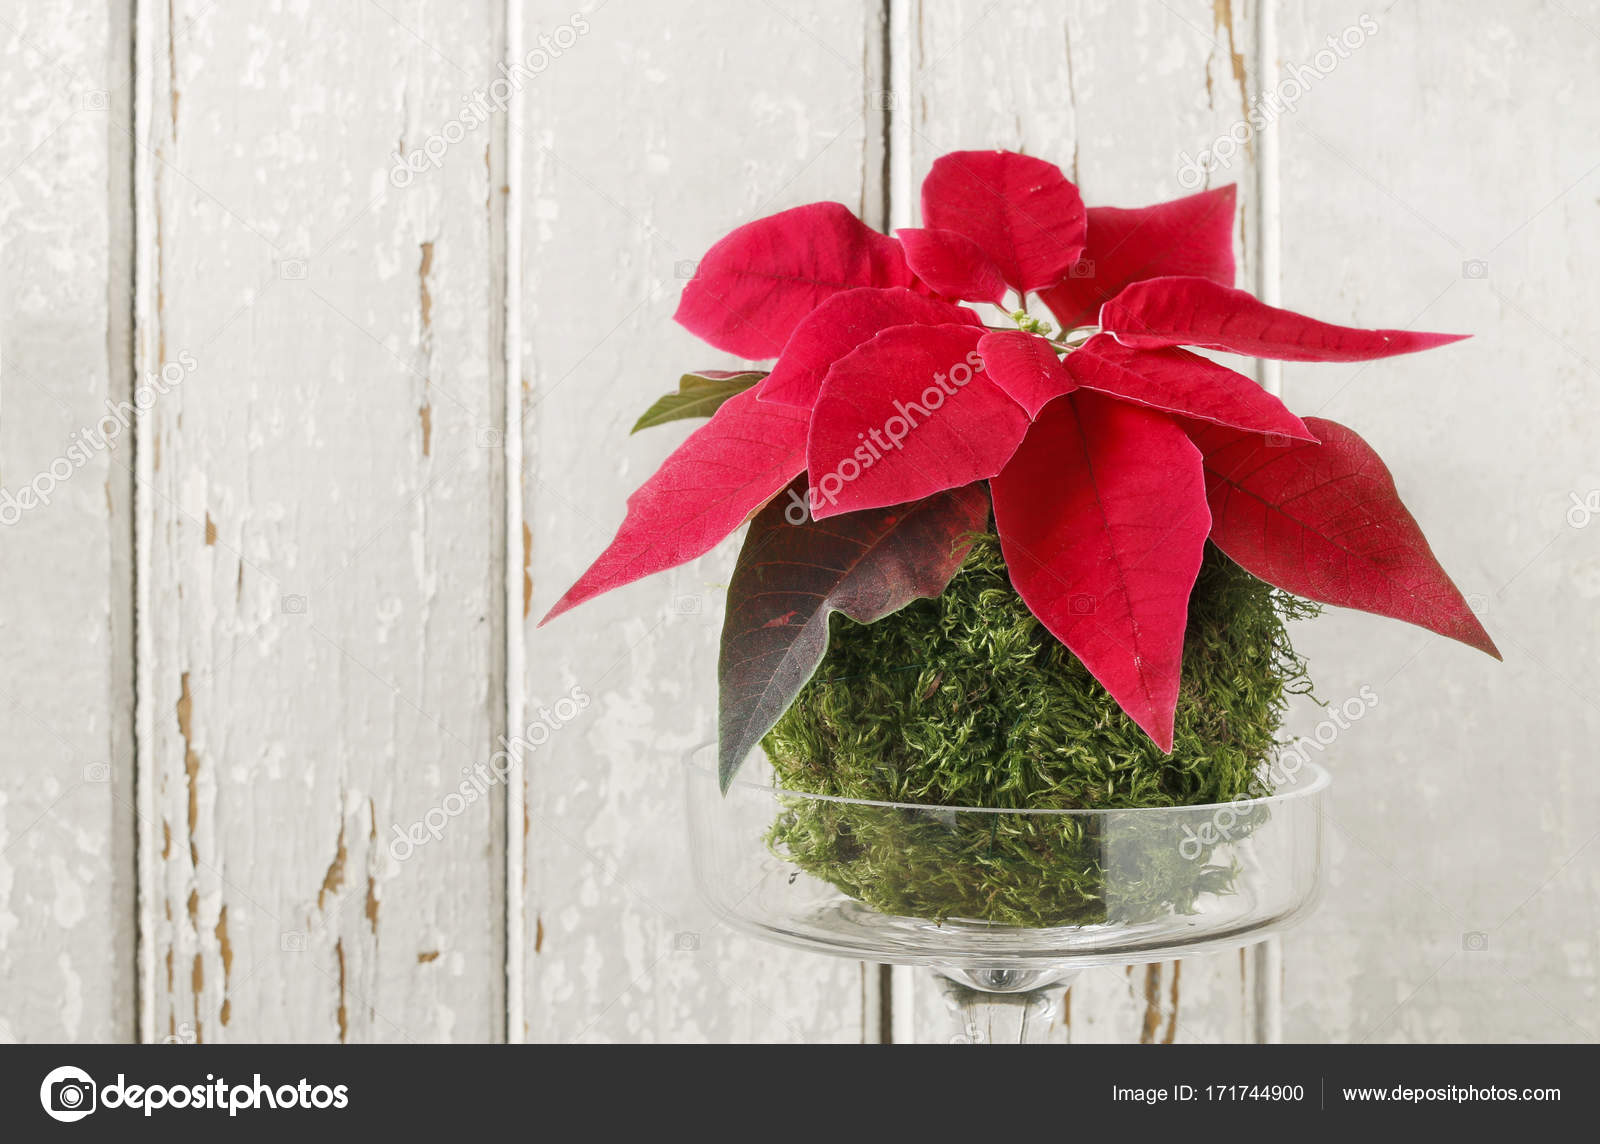 Florist at work: How to make christmas table decoration with red poinsettia flower and moss ball. Step by step, tutorial. — Photo by agneskantaruk